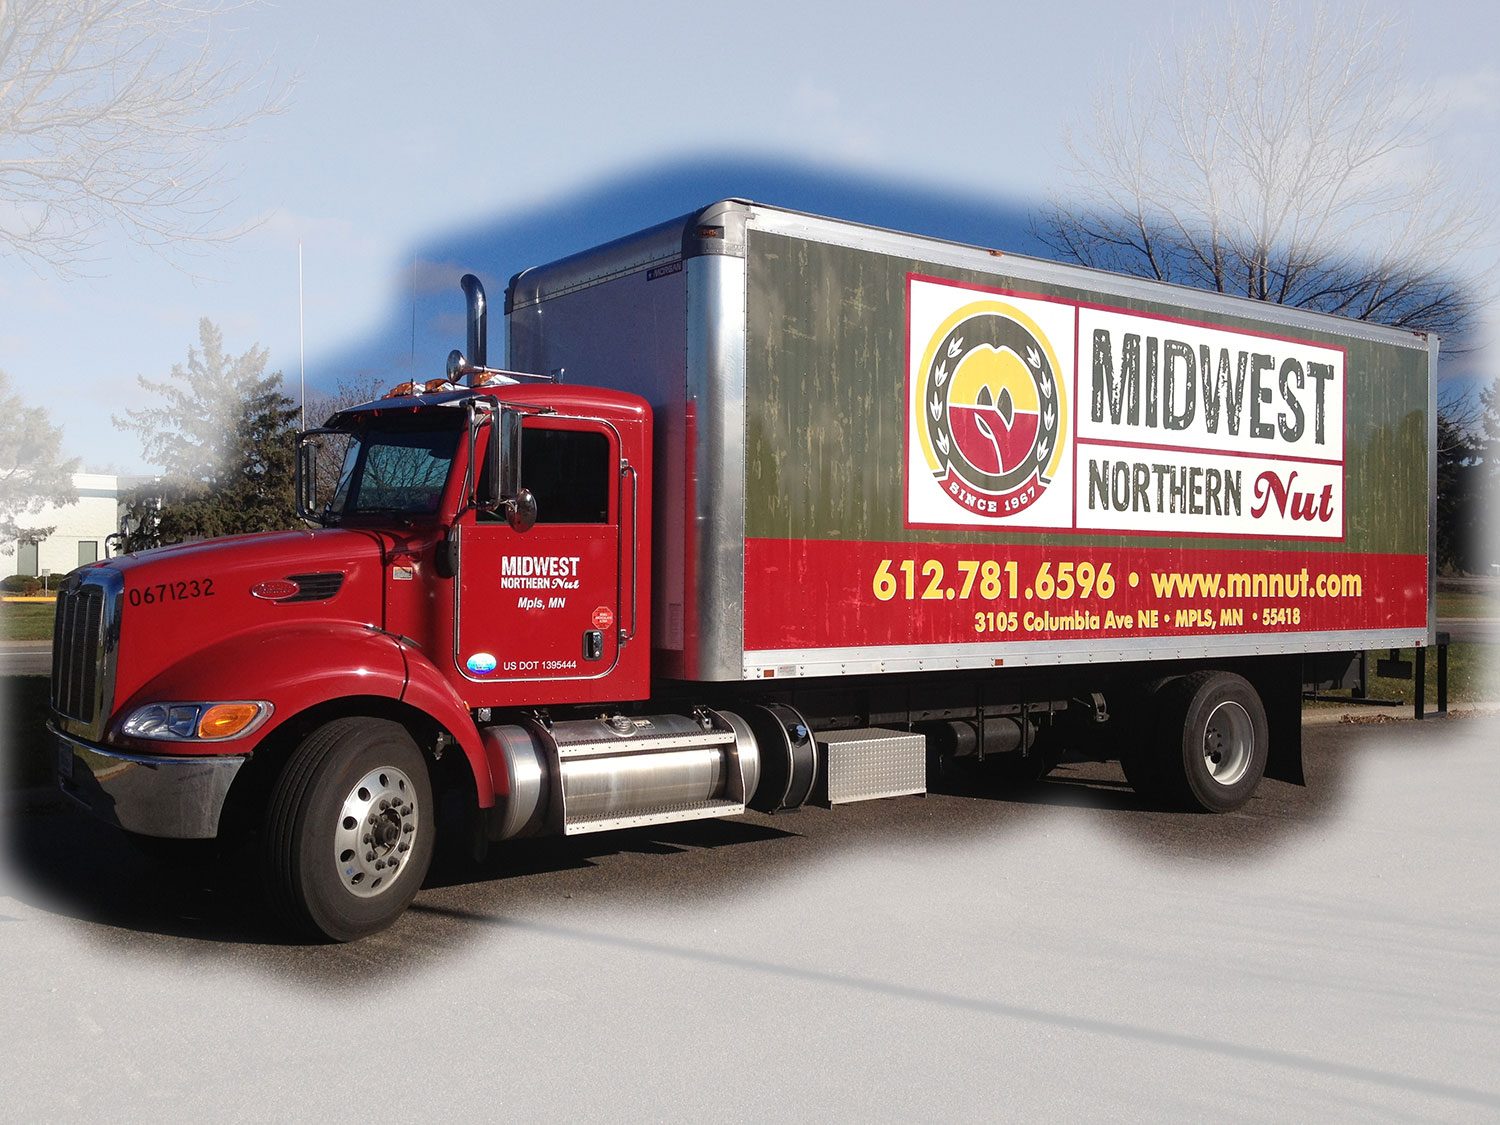 Midwest-Northern-Nut-Box-Truck